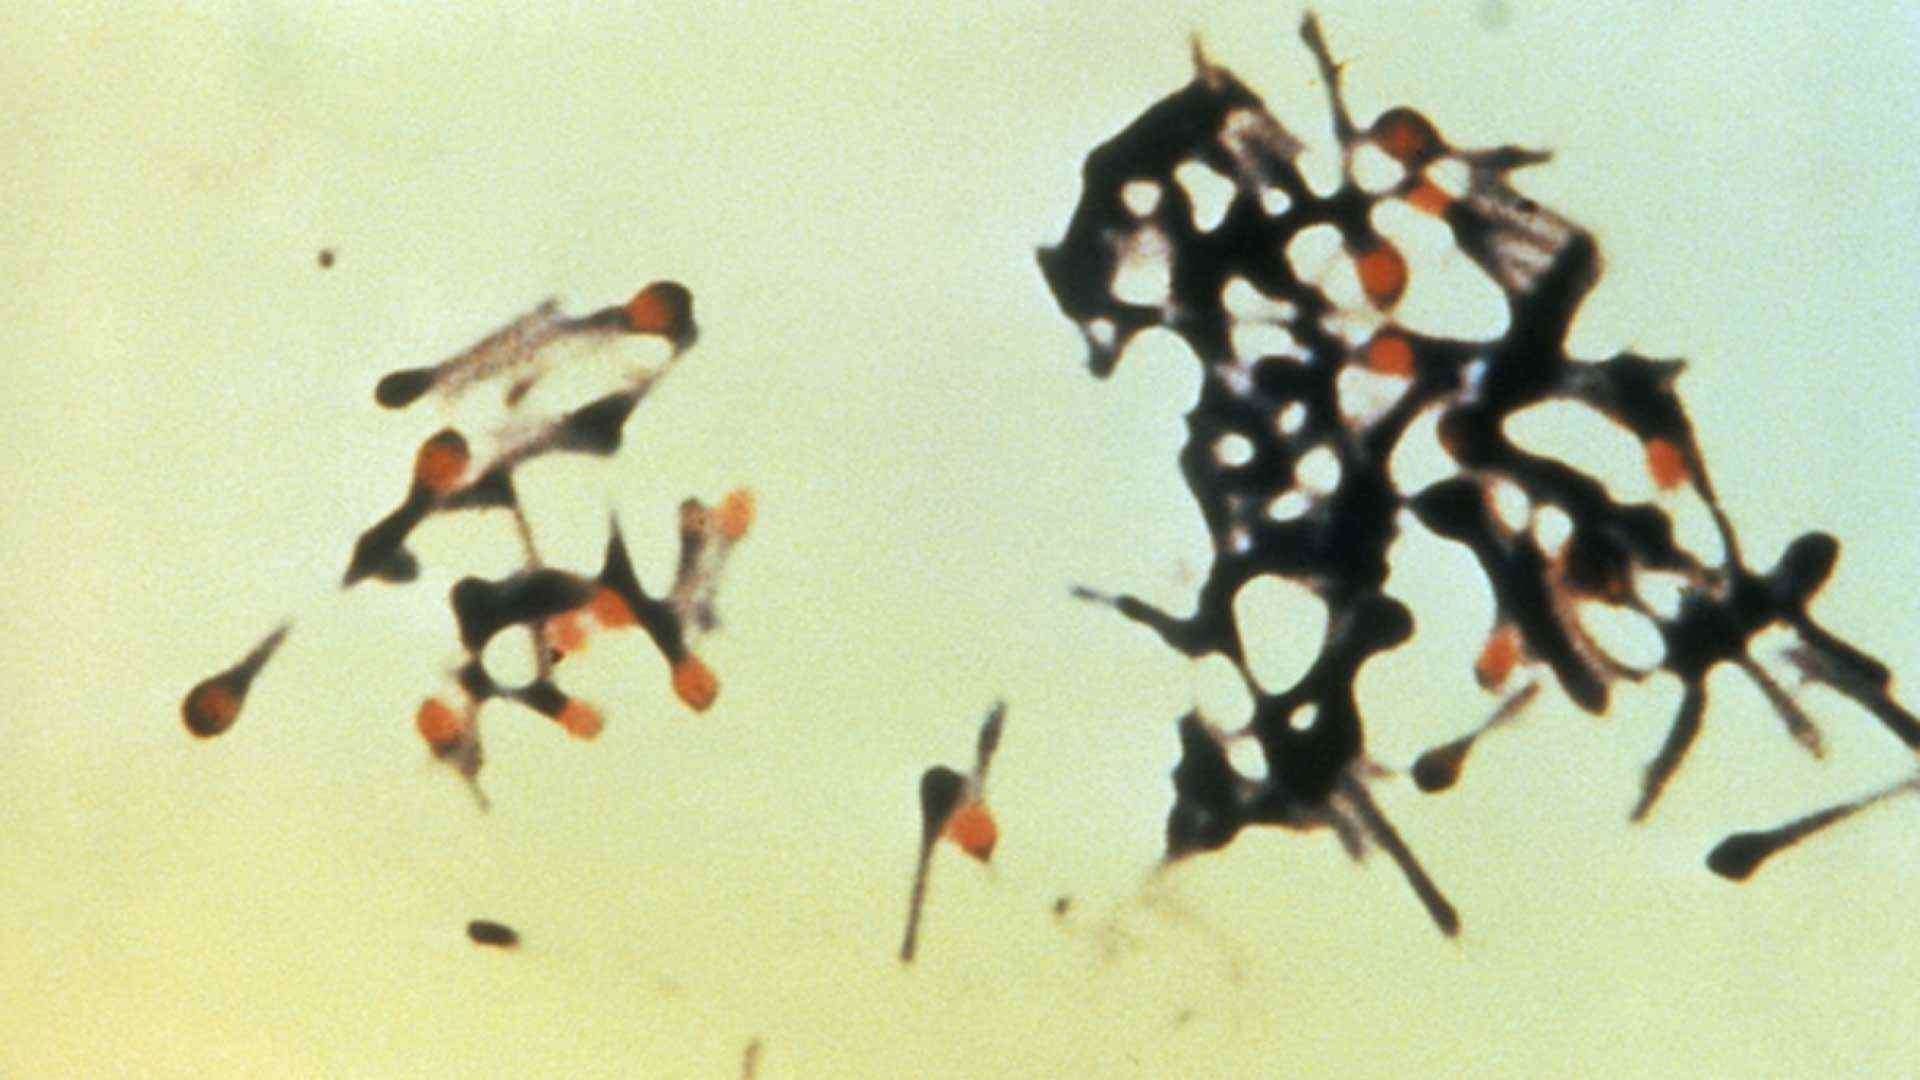 Micrograph depicting a group of fatal bacteria - they could be destroyed by wavelengths of blue light